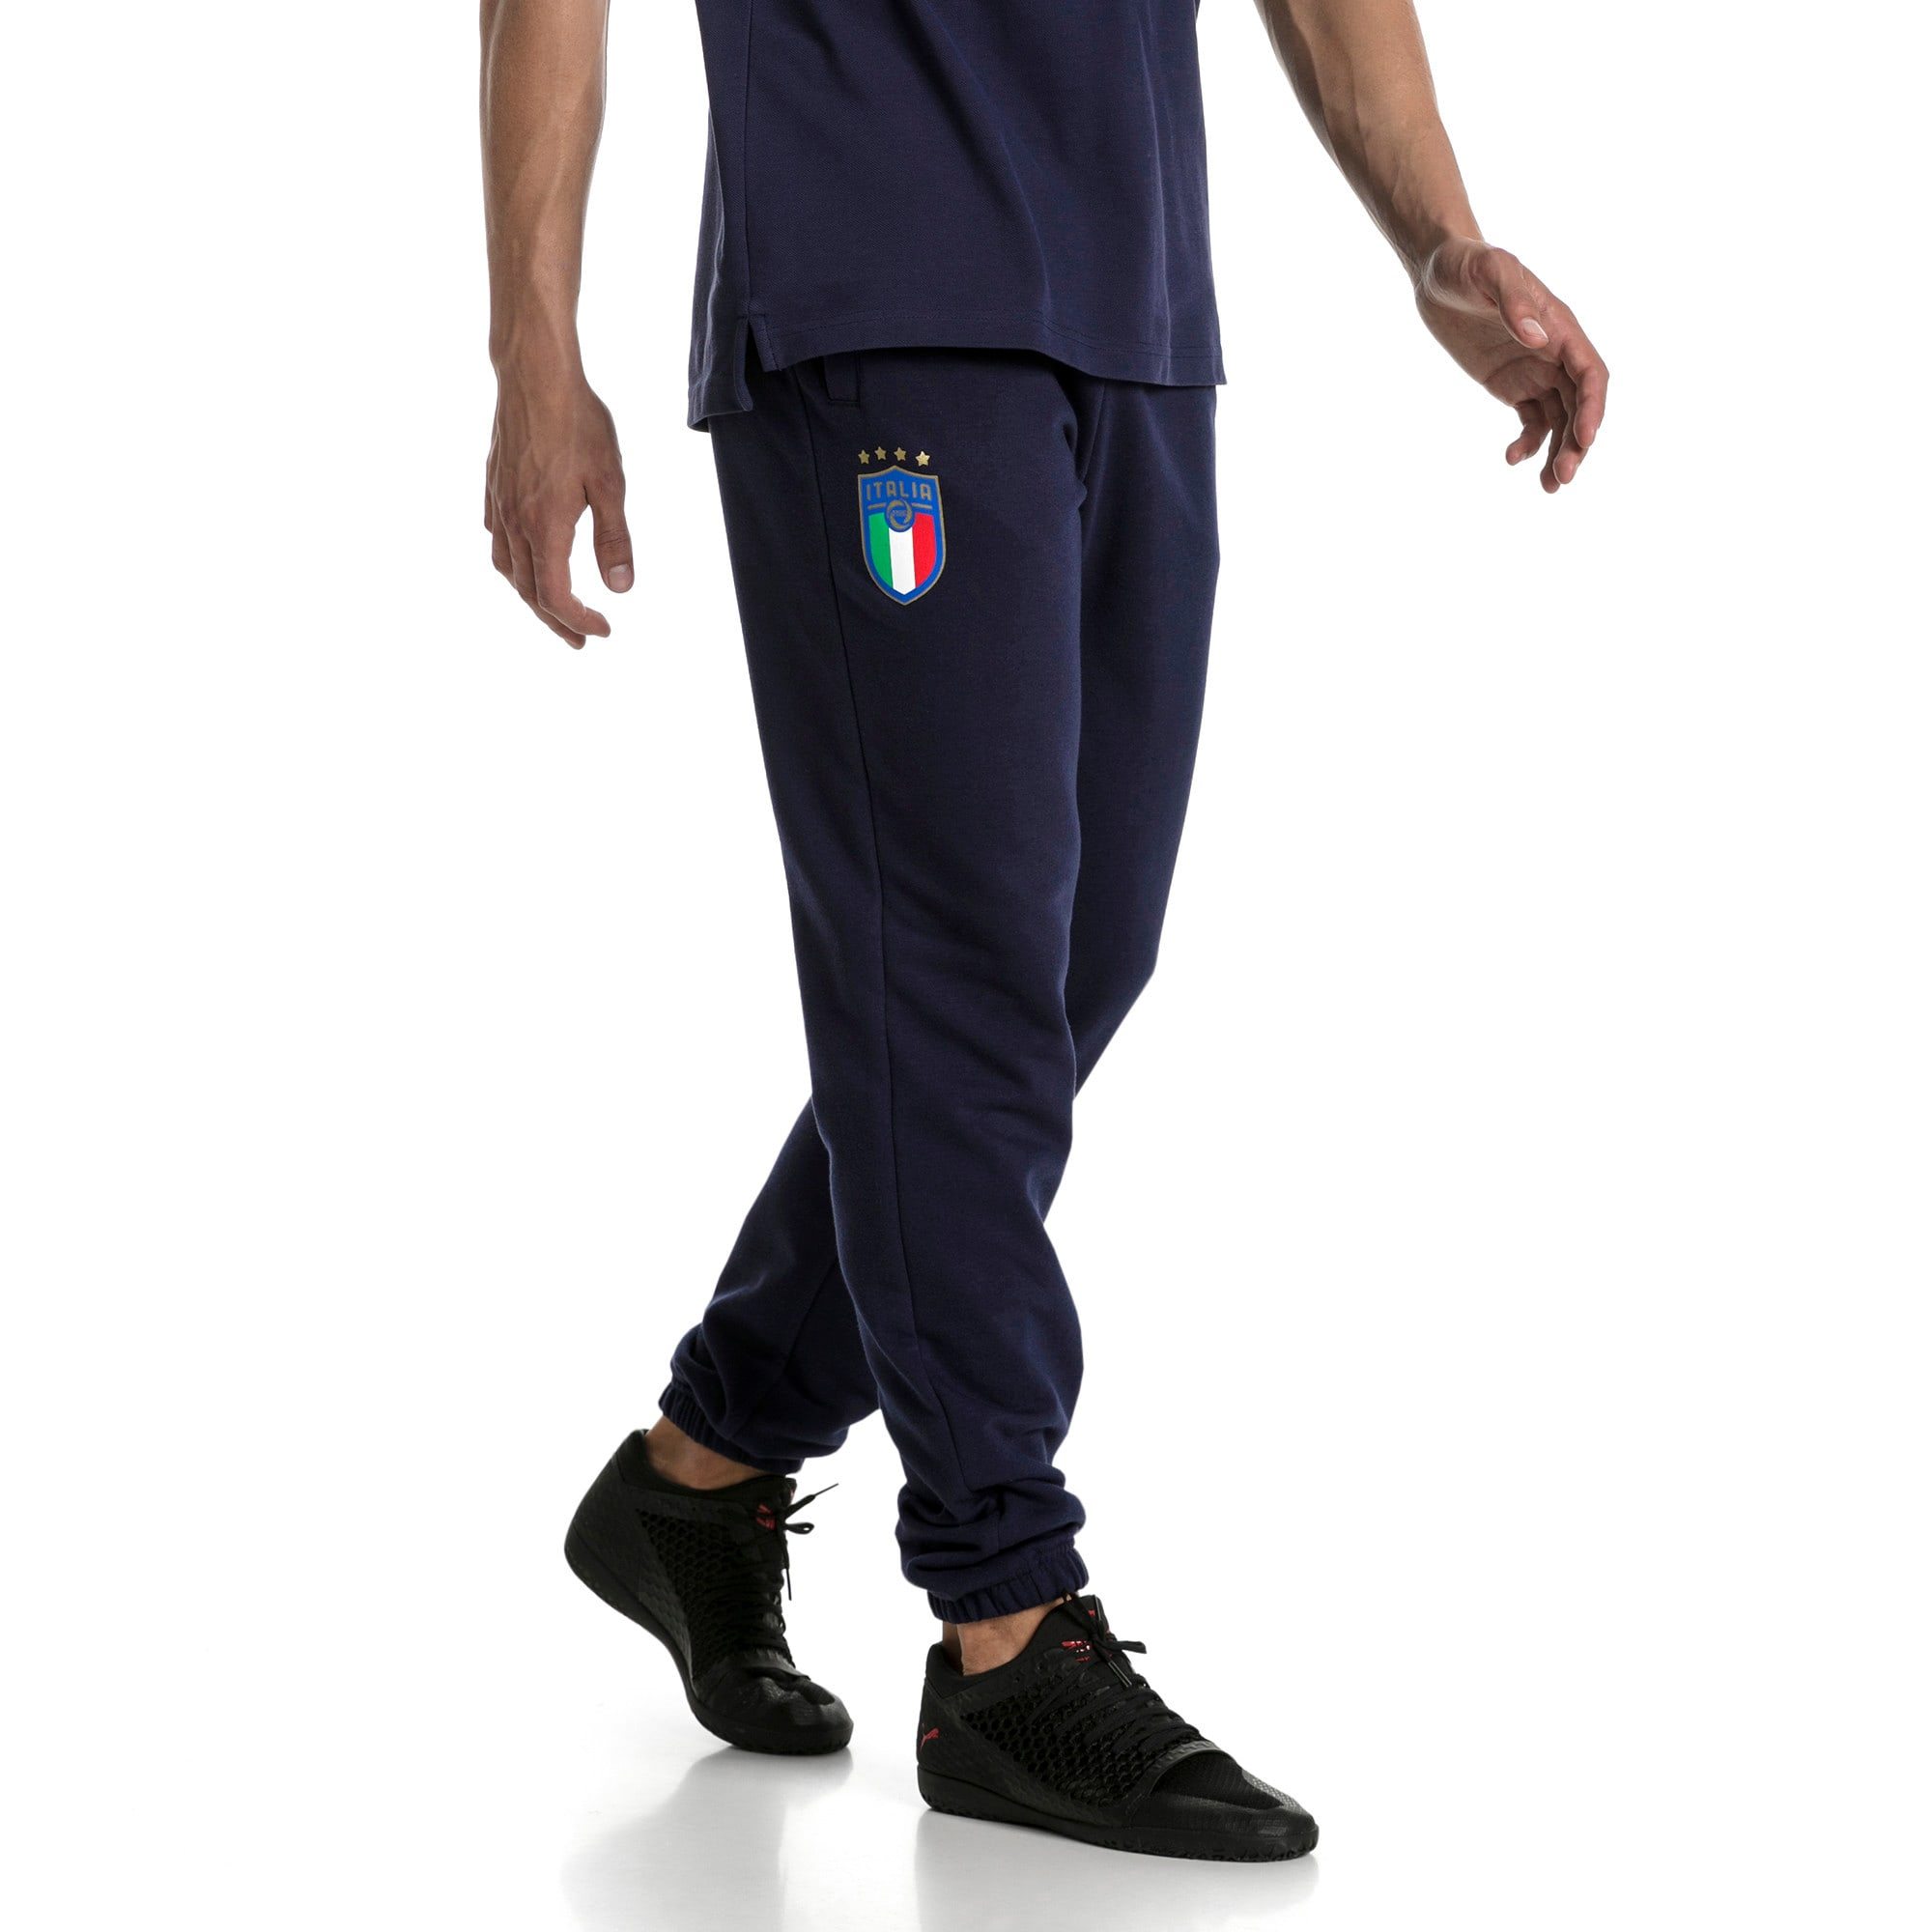 Thumbnail 2 of Italia Herren Jogginghose, Peacoat, medium